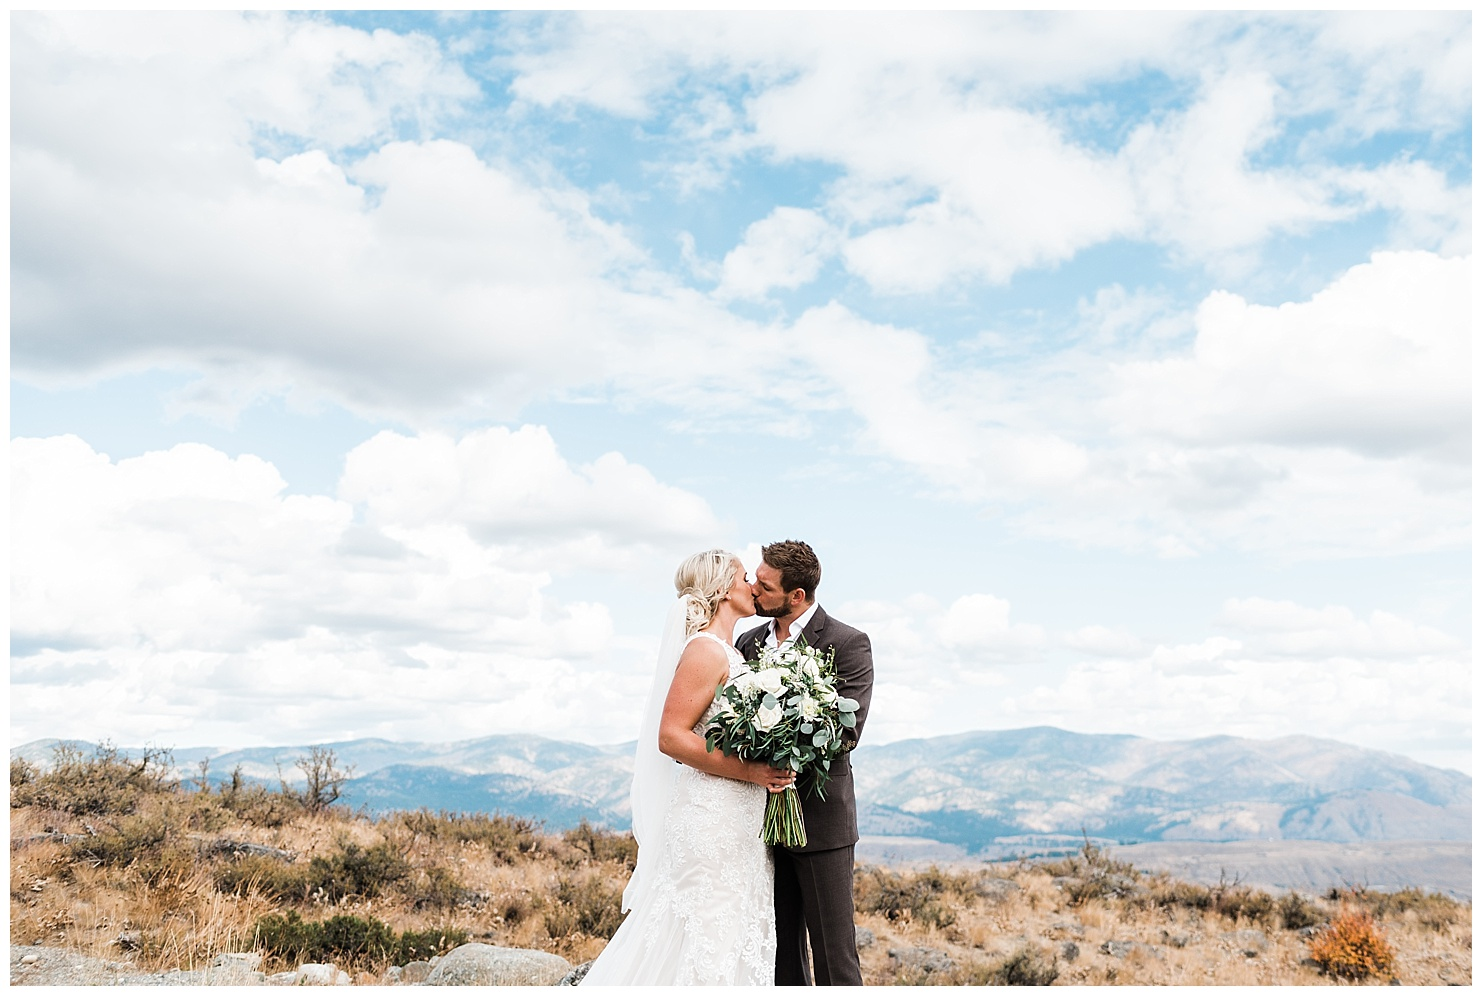 Destination Wedding at Sun Mountain Lodge by Forthright Photo